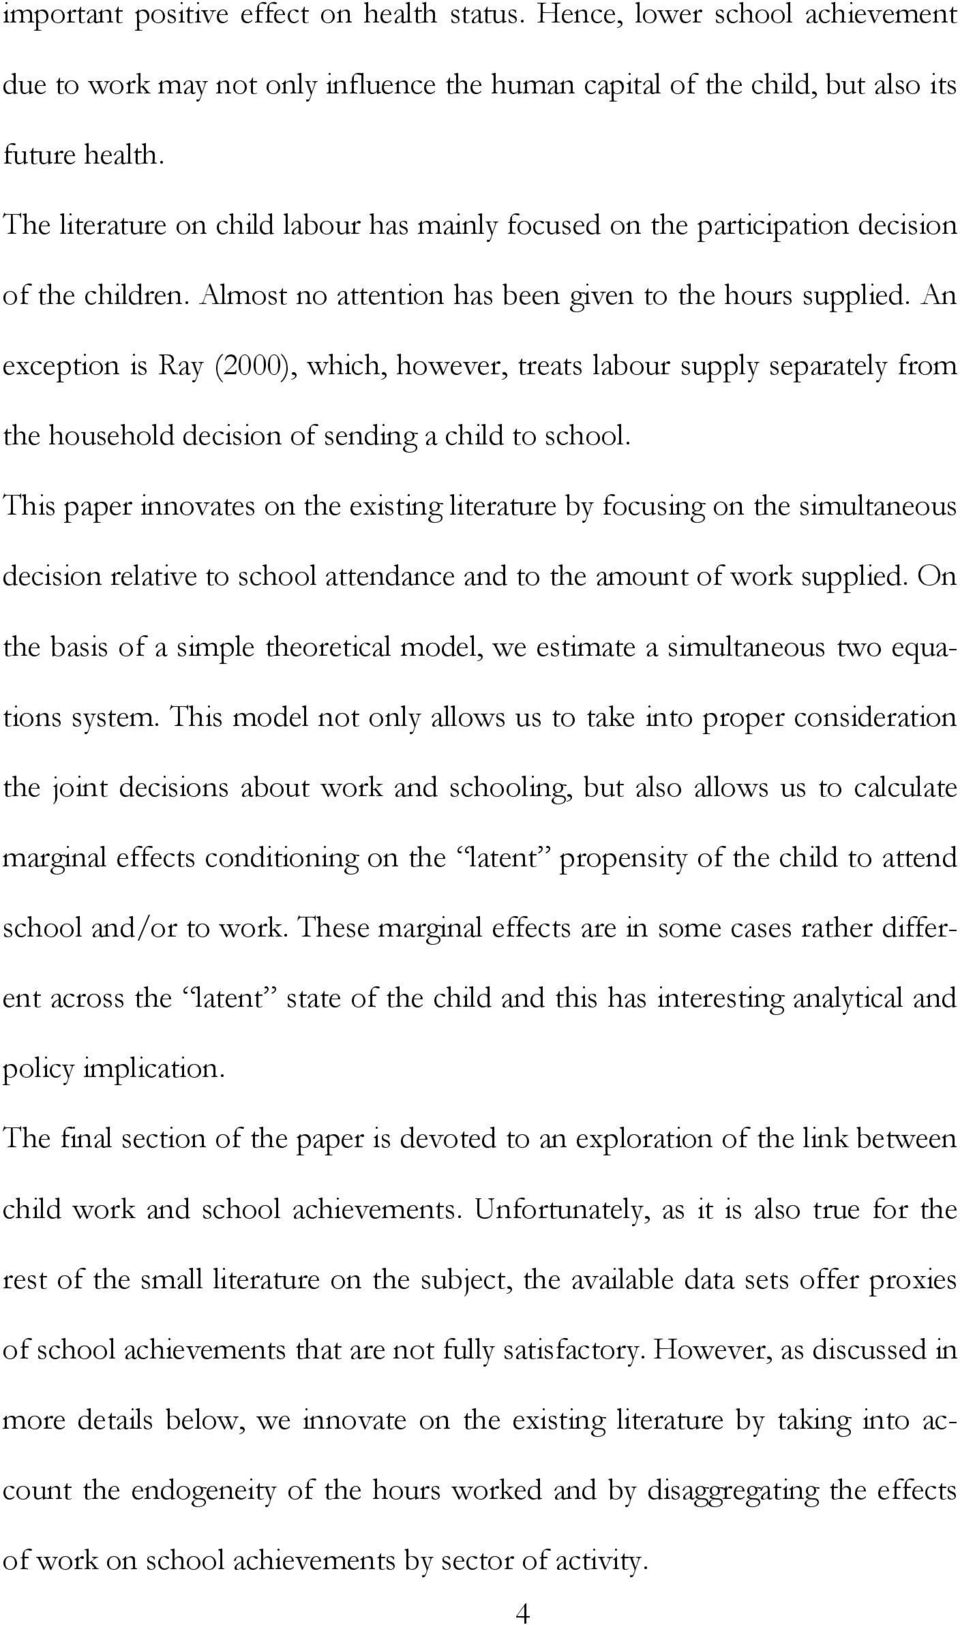 An exception is Ray (2000), which, however, treats labour supply separately from the household decision of sending a child to school.